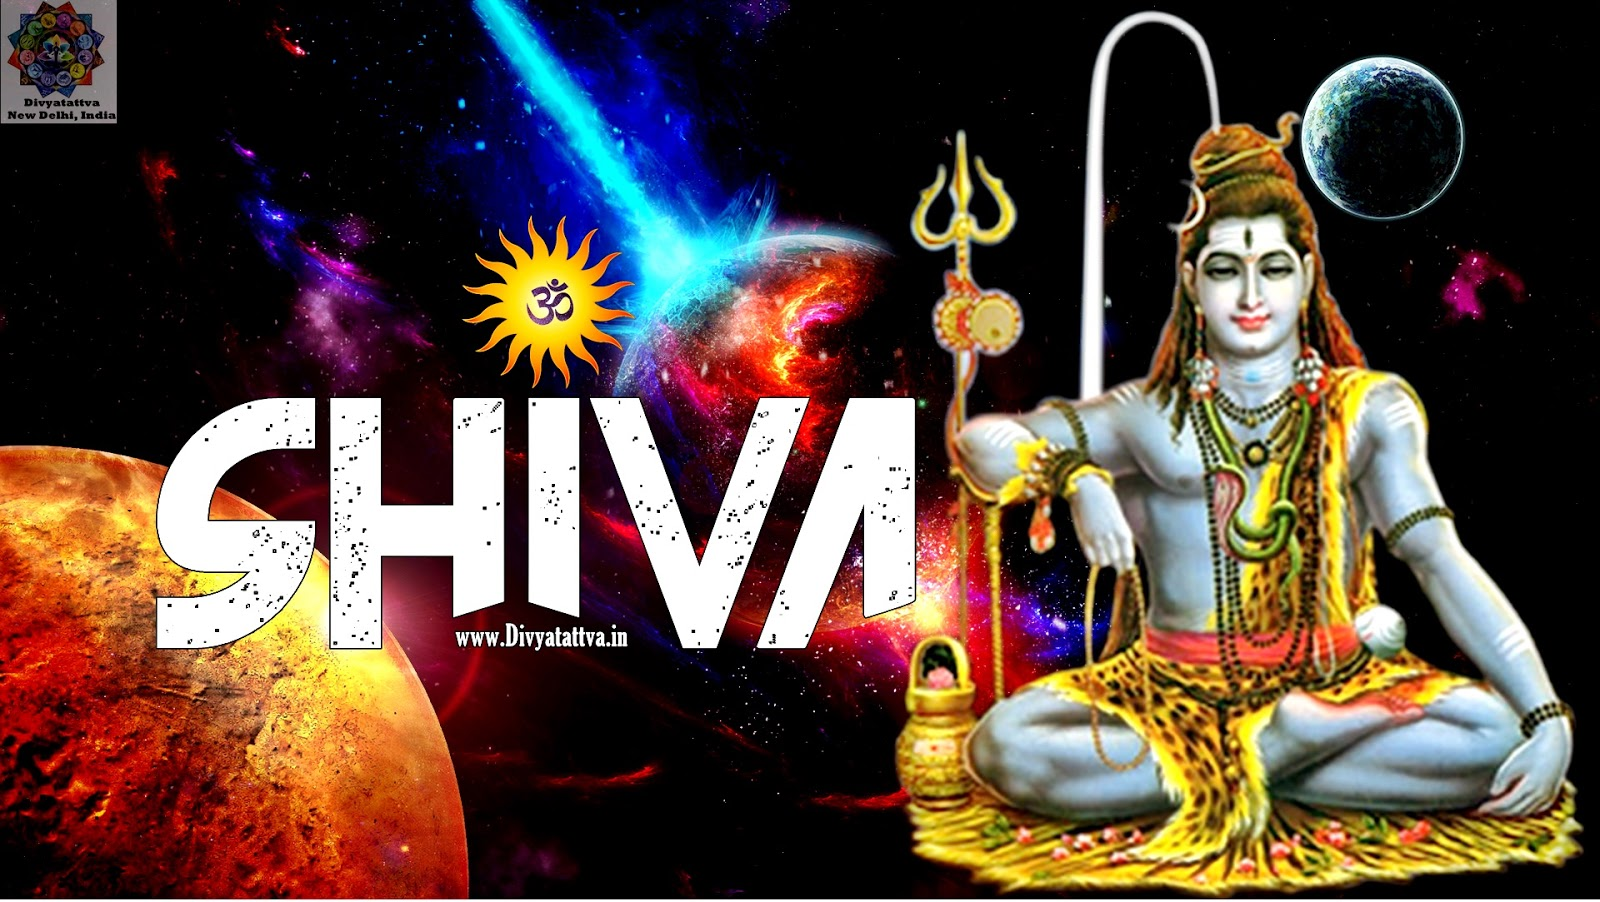 Divyatattva Astrology Free Horoscopes Psychic Tarot Yoga Tantra Occult Images Videos Lord Shiva Hd Wallpapers 1920x1080 Download Lord Shiva Images Wallpapers Photos Pics